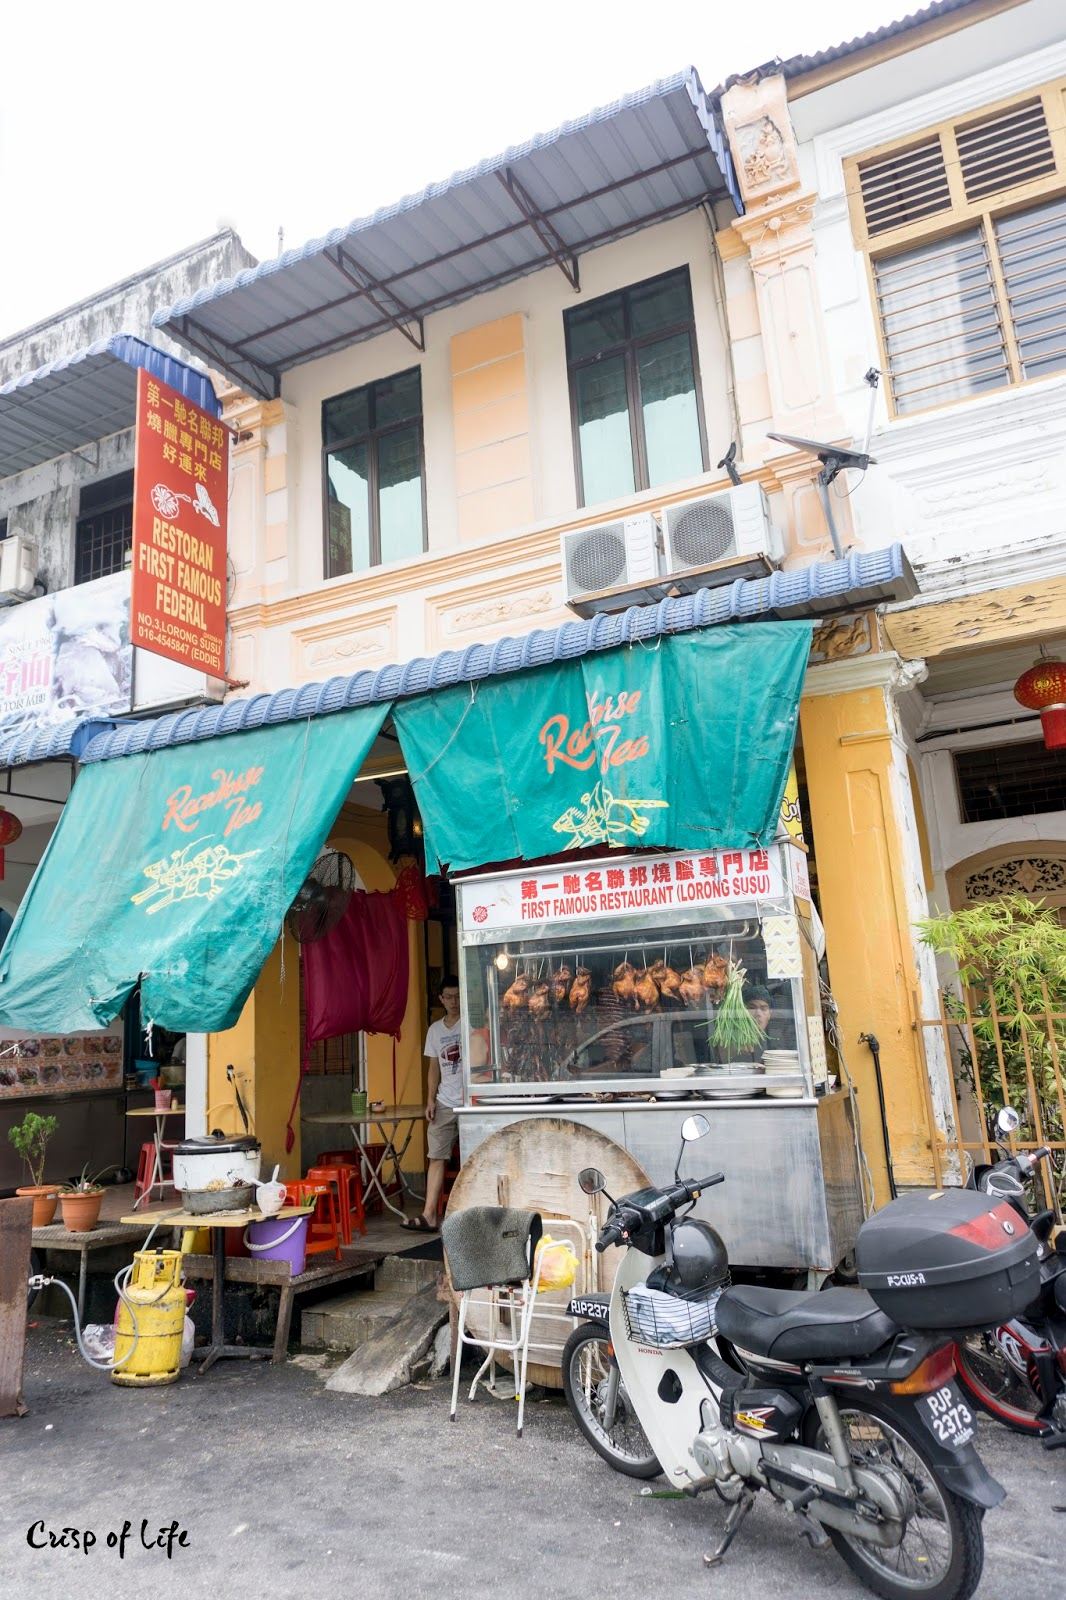 First Famous Federal Restaurant Lorong susu Penang